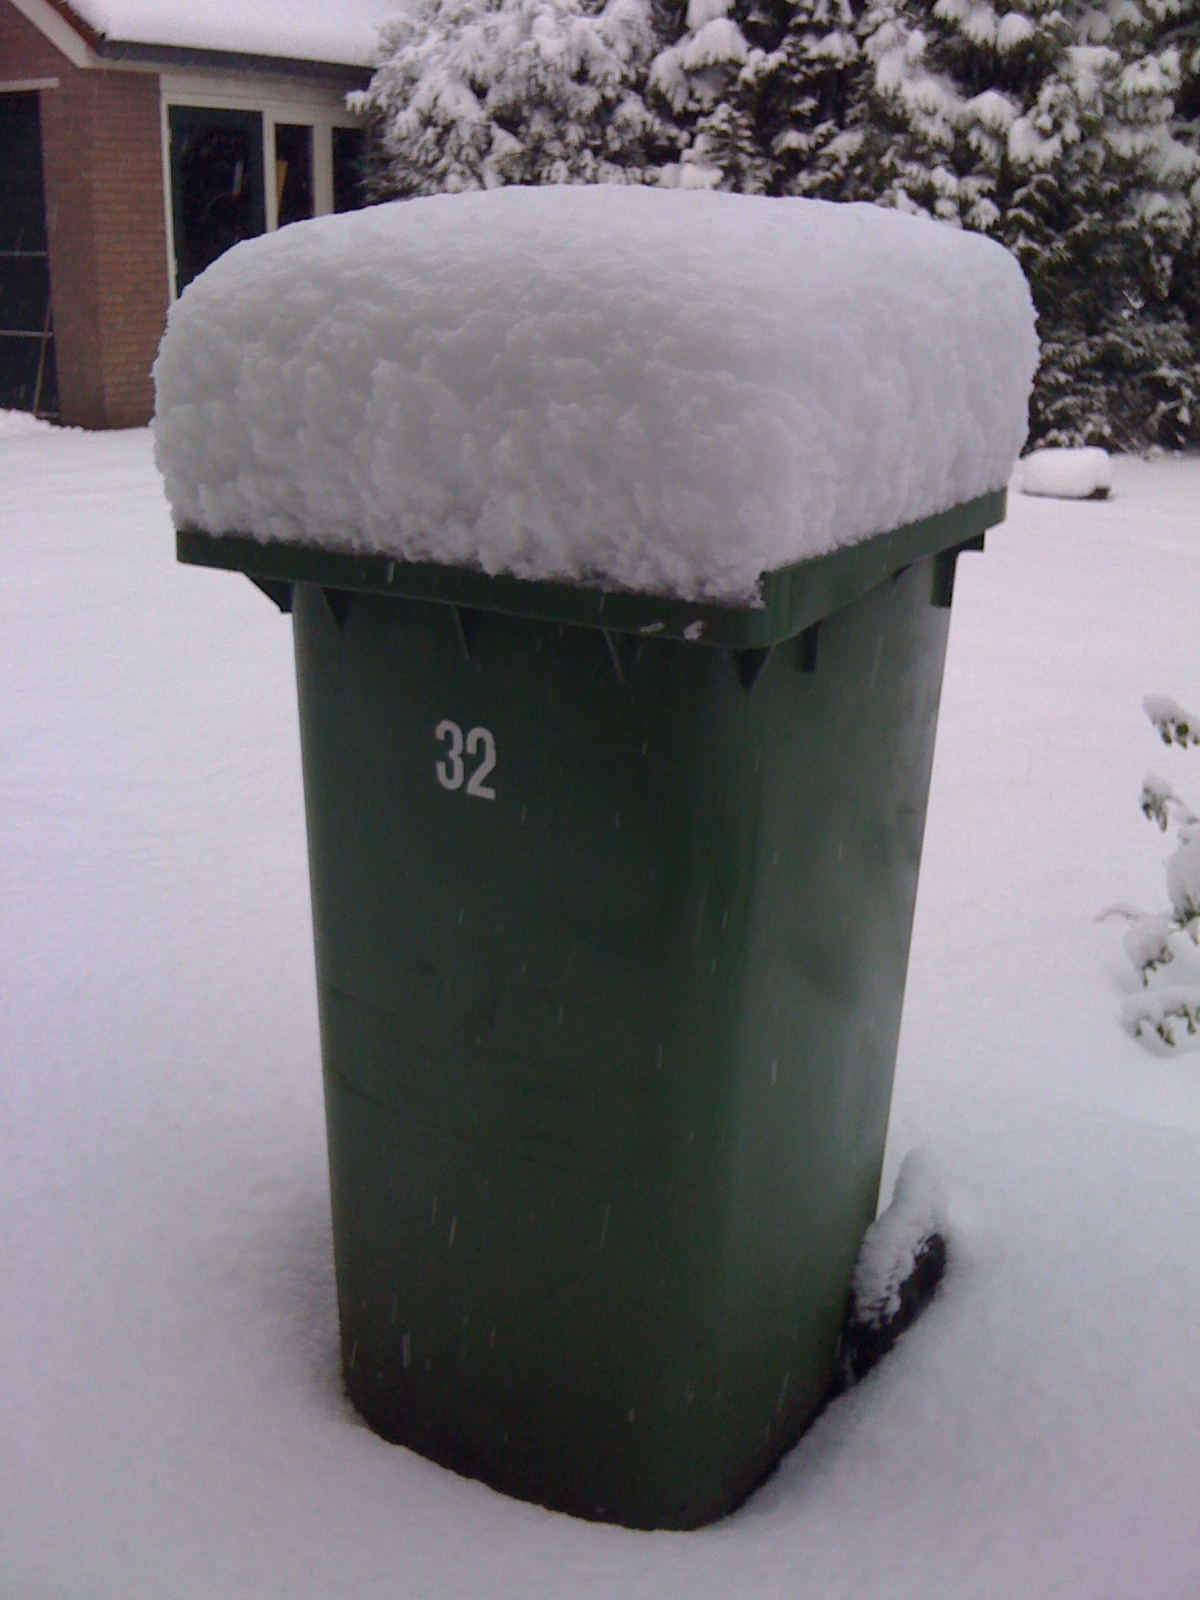 Green bin with snow